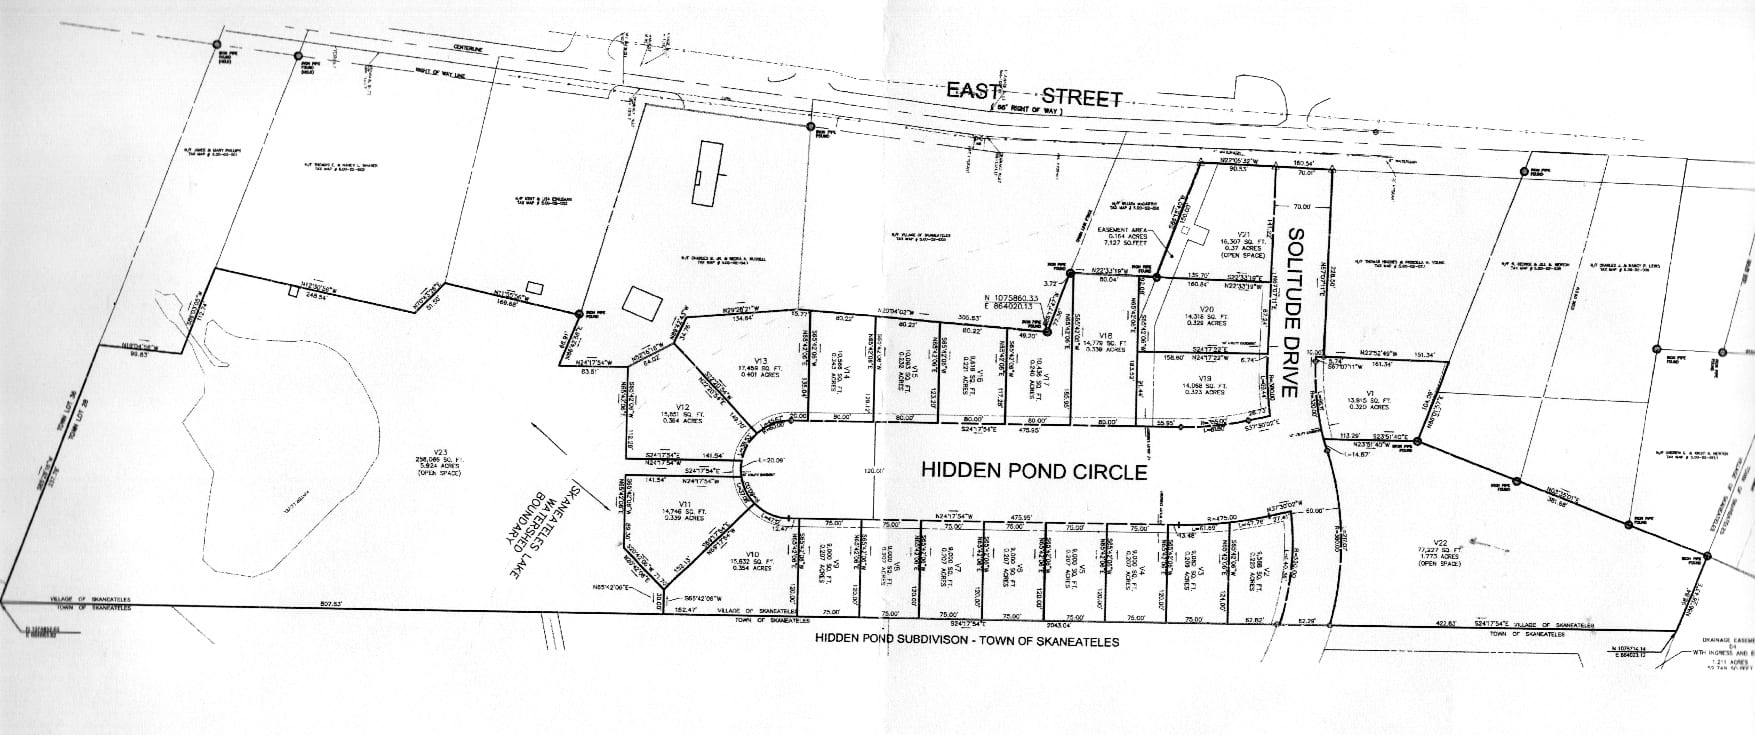 Developer proposes 21-house subdivision in village